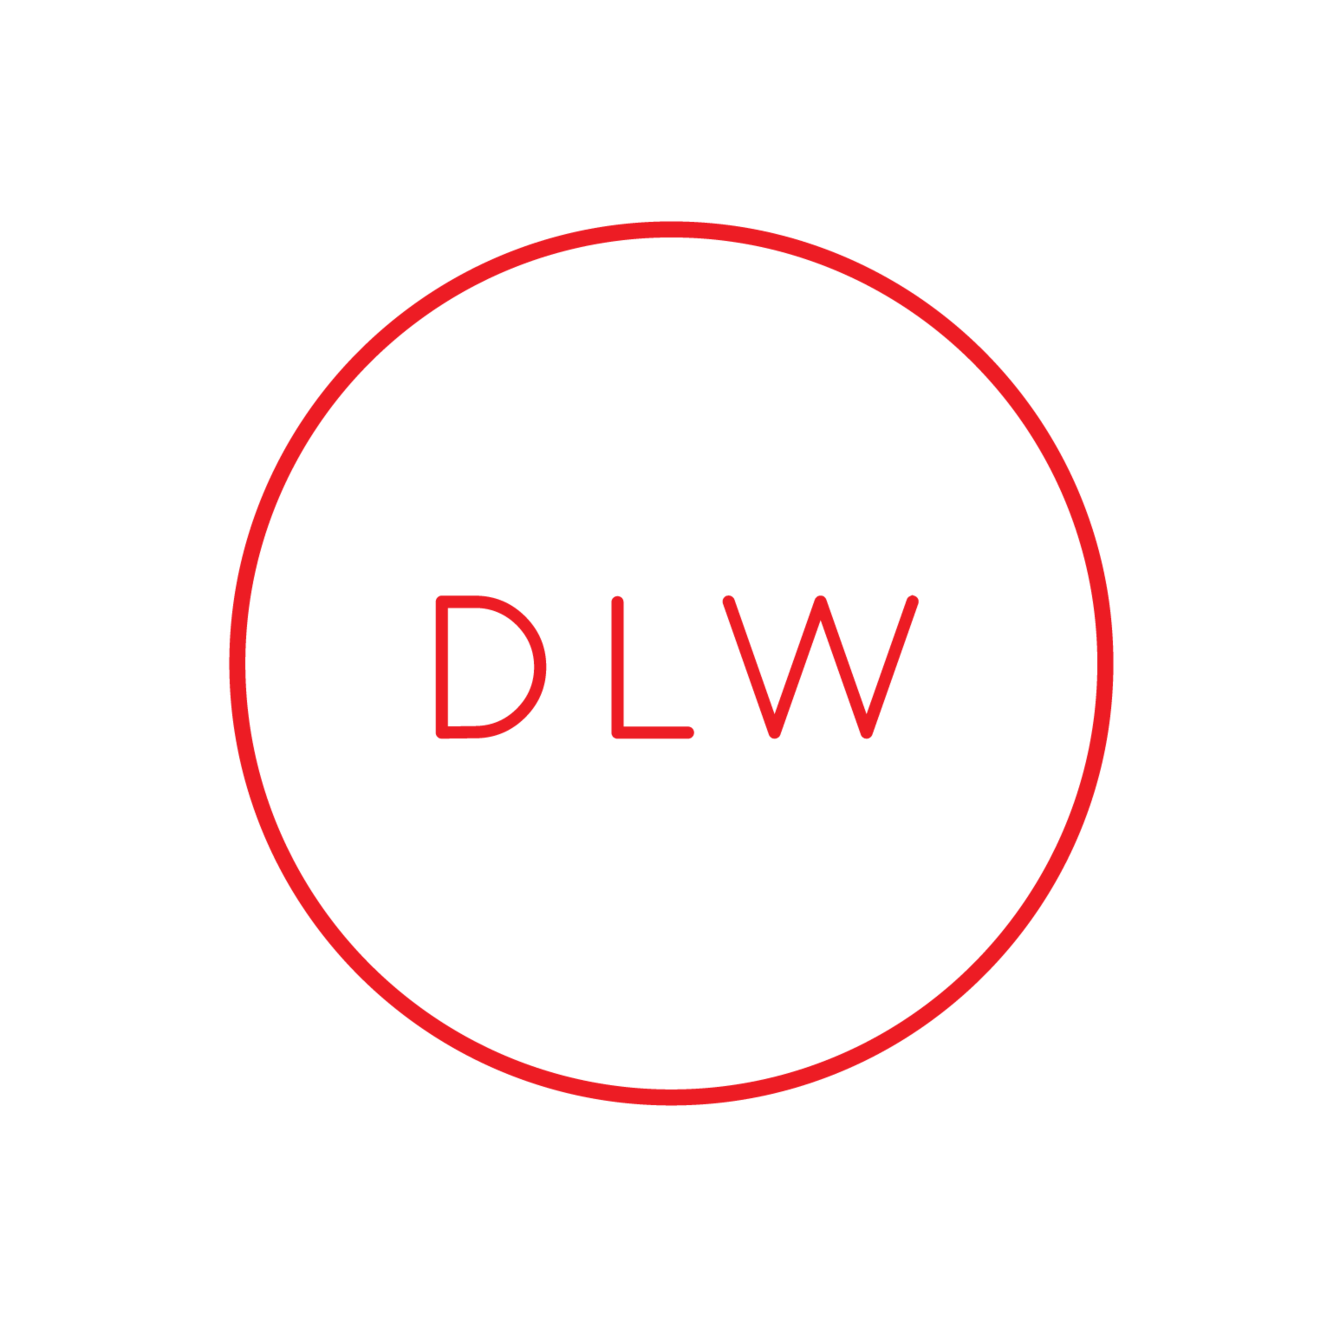 dlwwatches